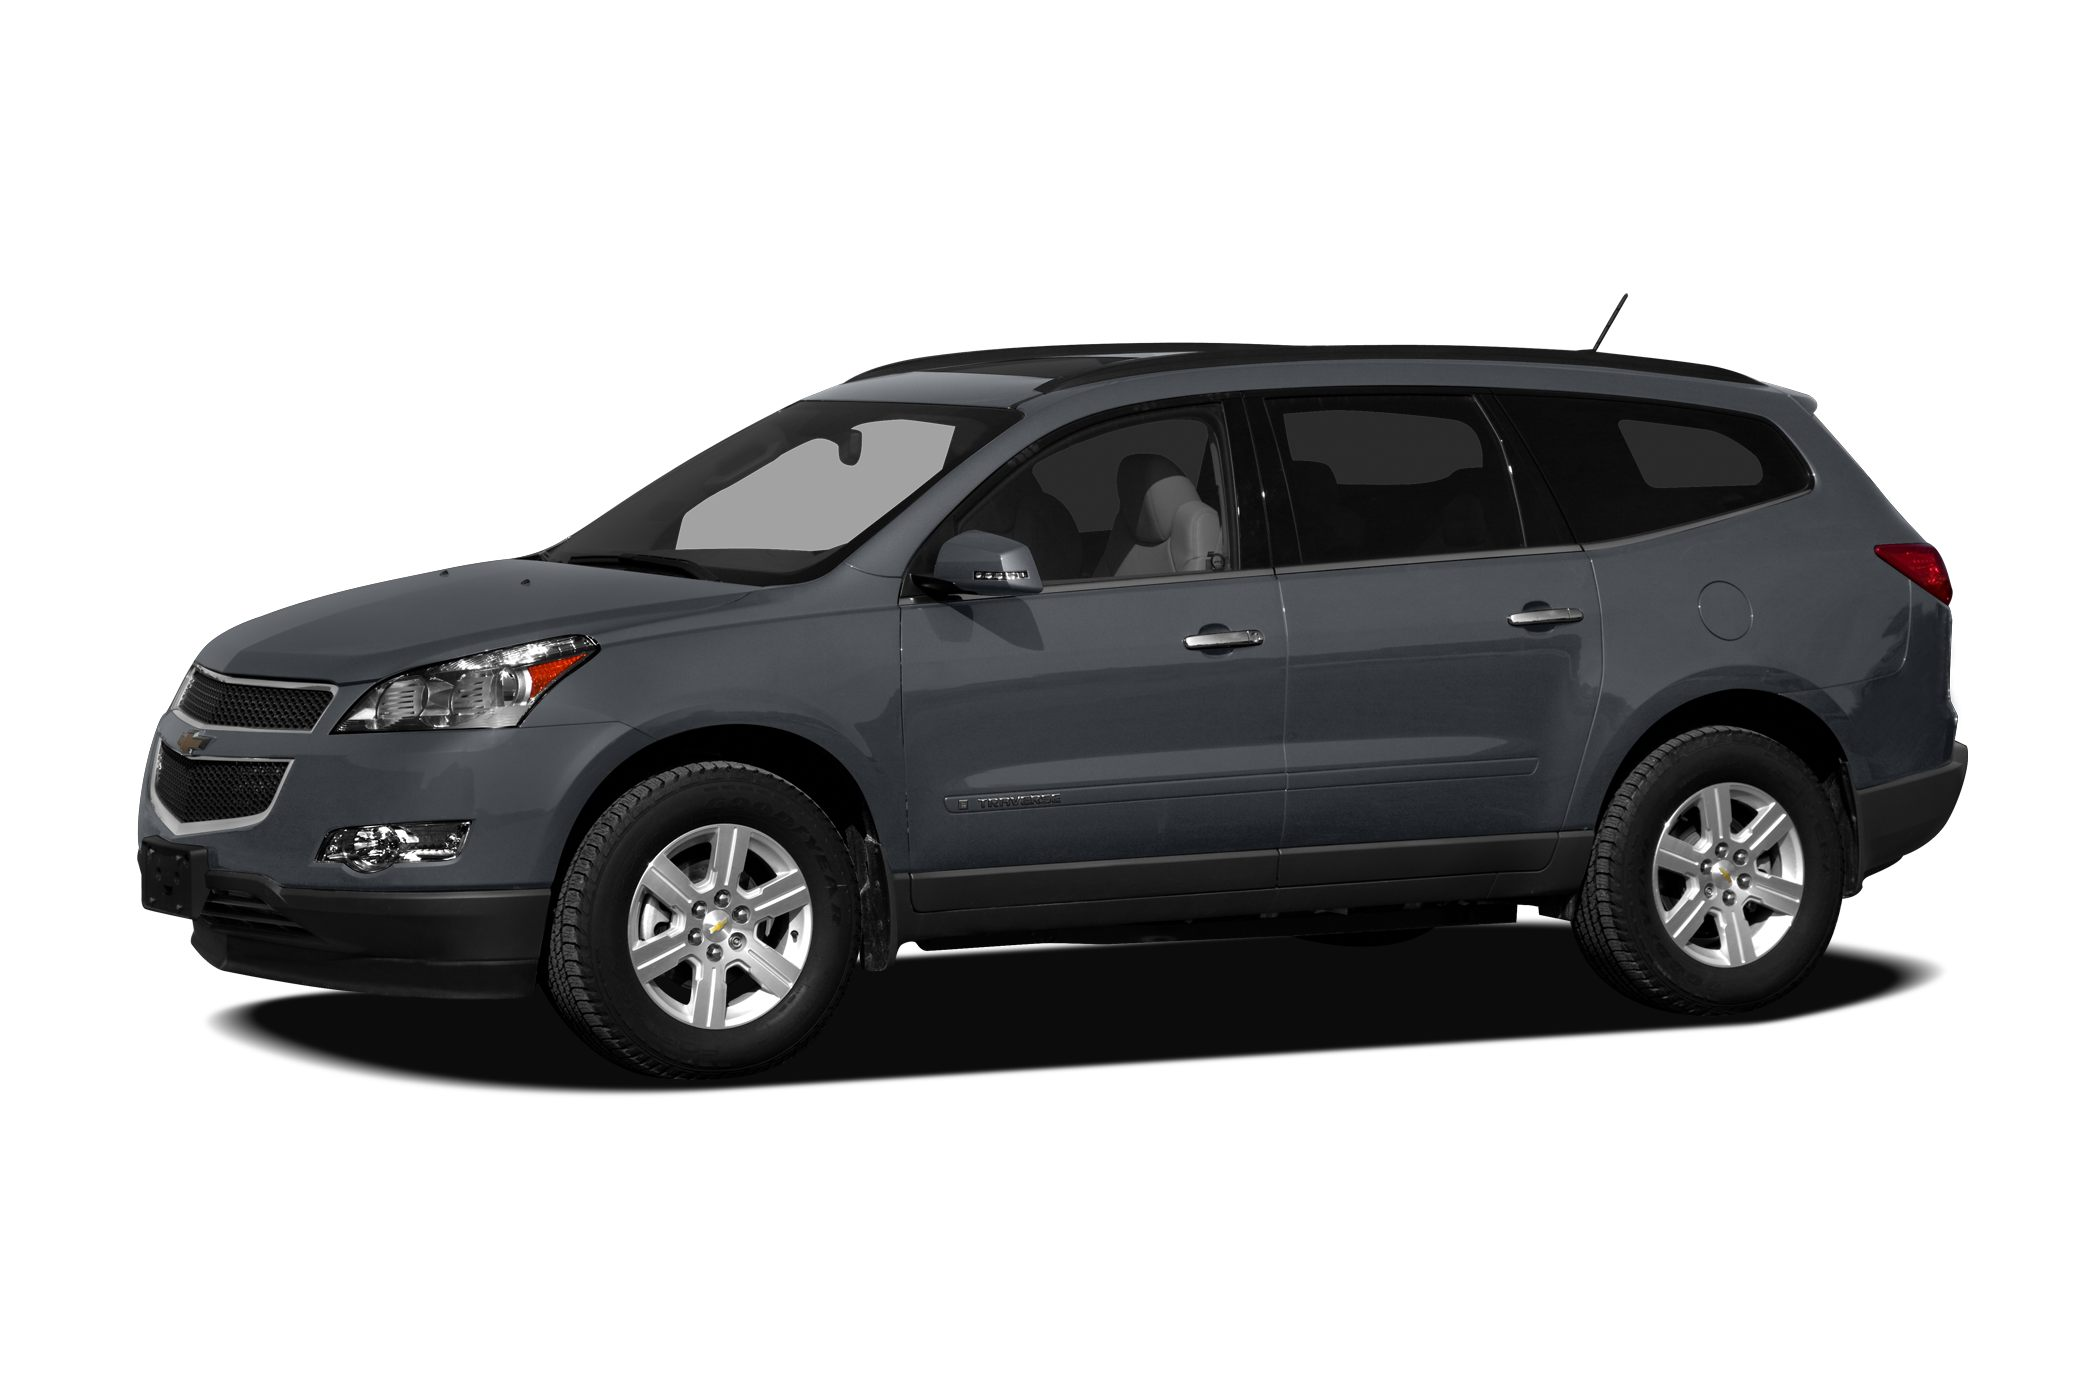 Chevy Traverse Used >> 2010 Chevrolet Traverse Owner Reviews And Ratings